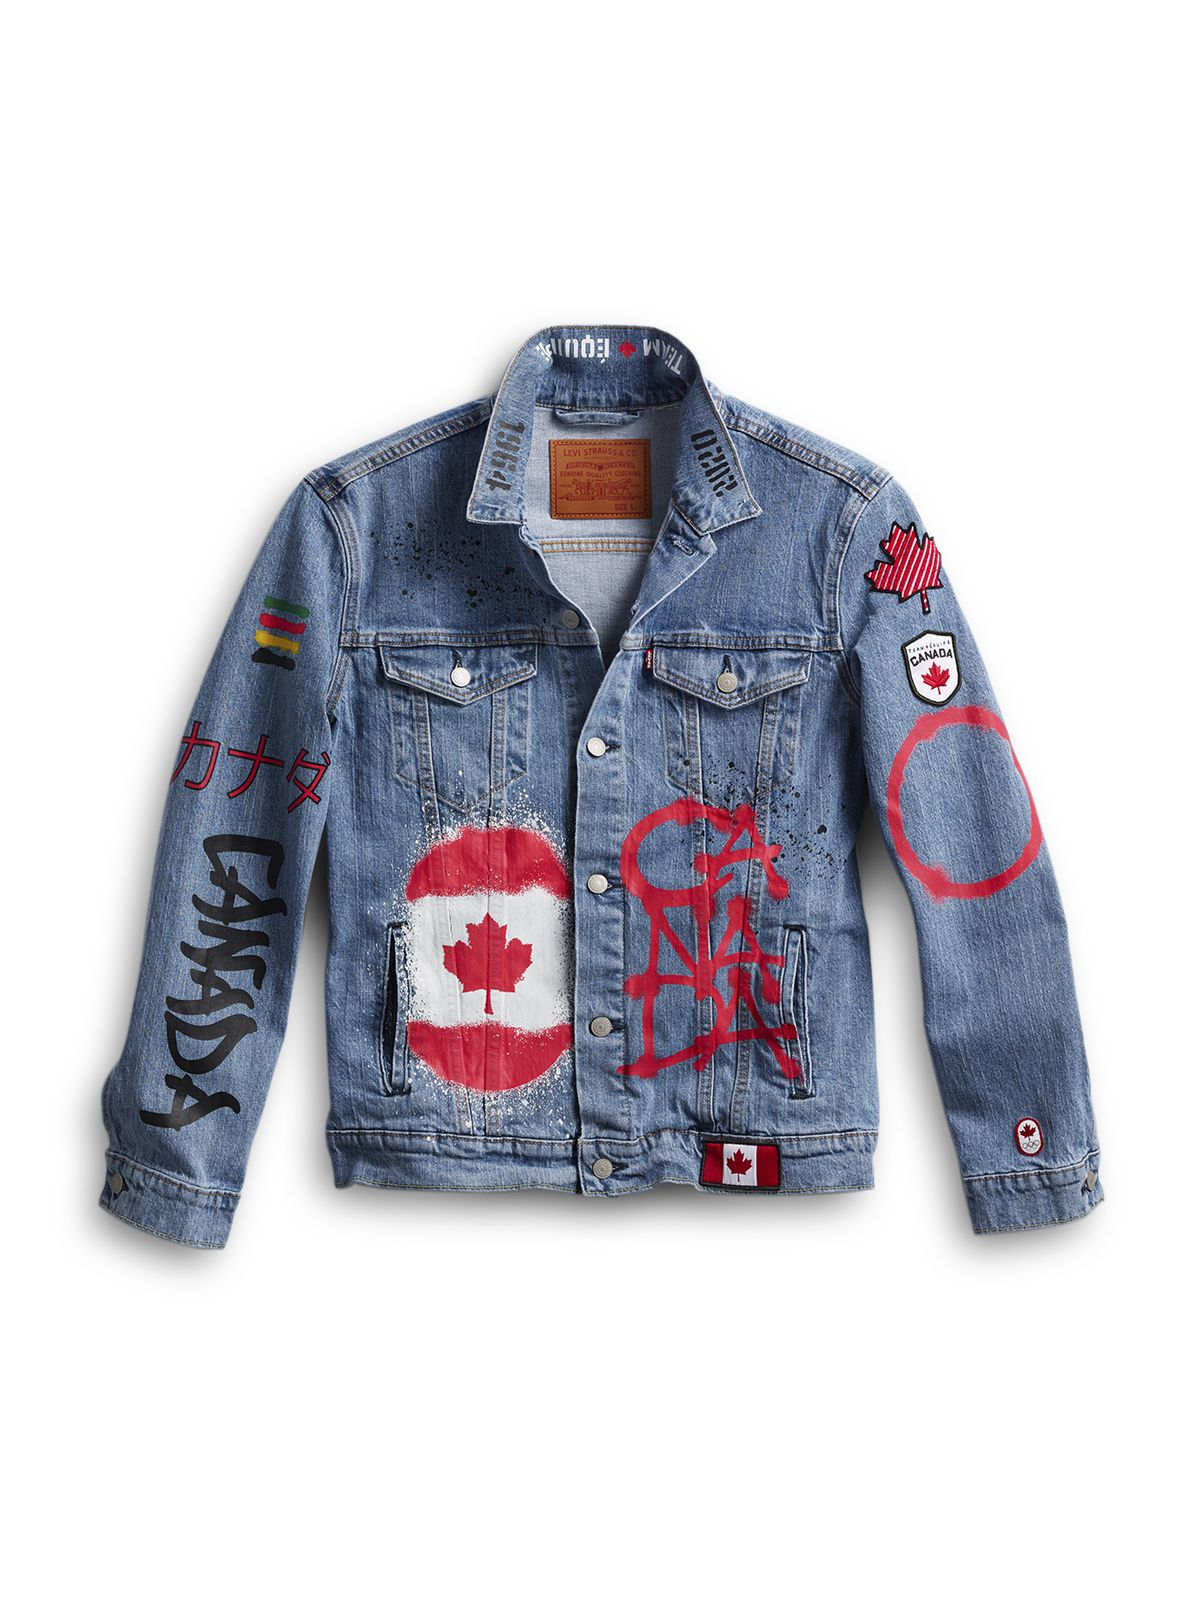 Team Canada will wear this denim jacket during the closing ceremony of the Tokyo Olympics.